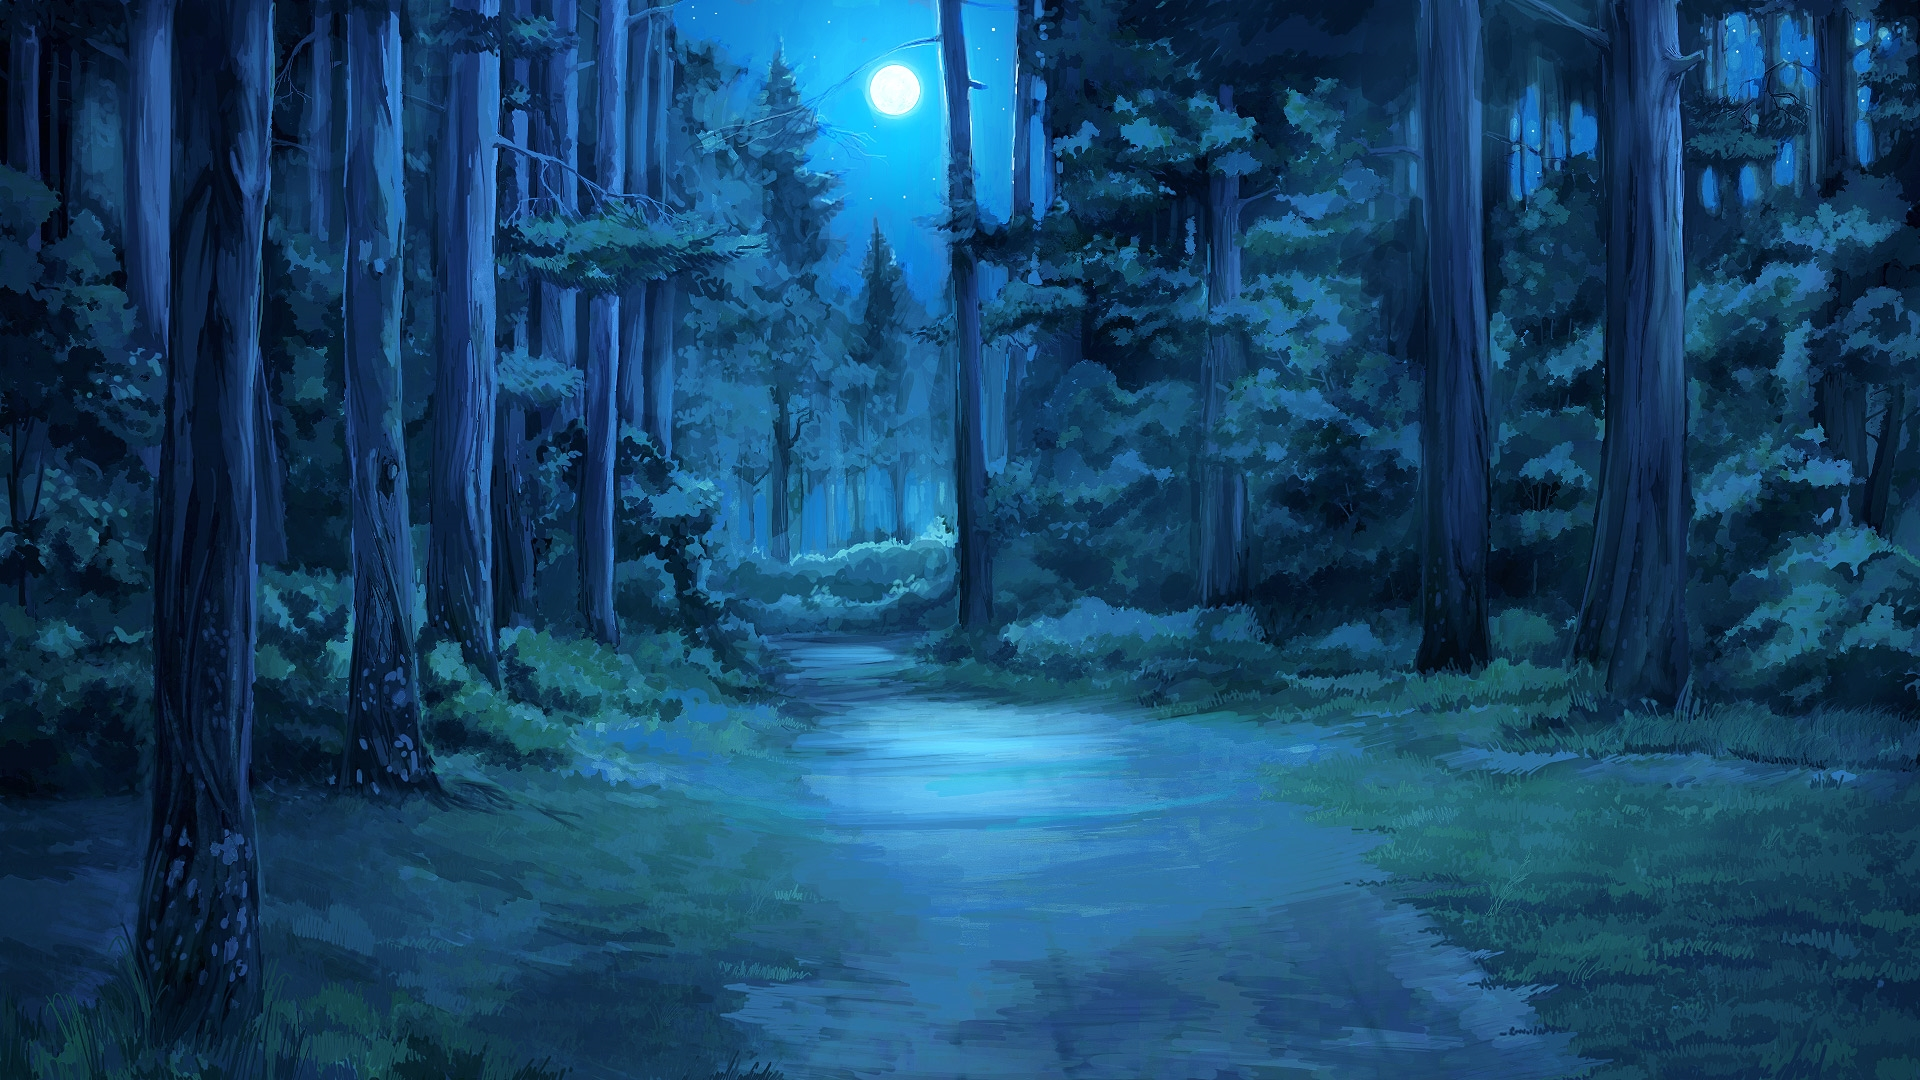 Anime Forest hd wallpaper for pc